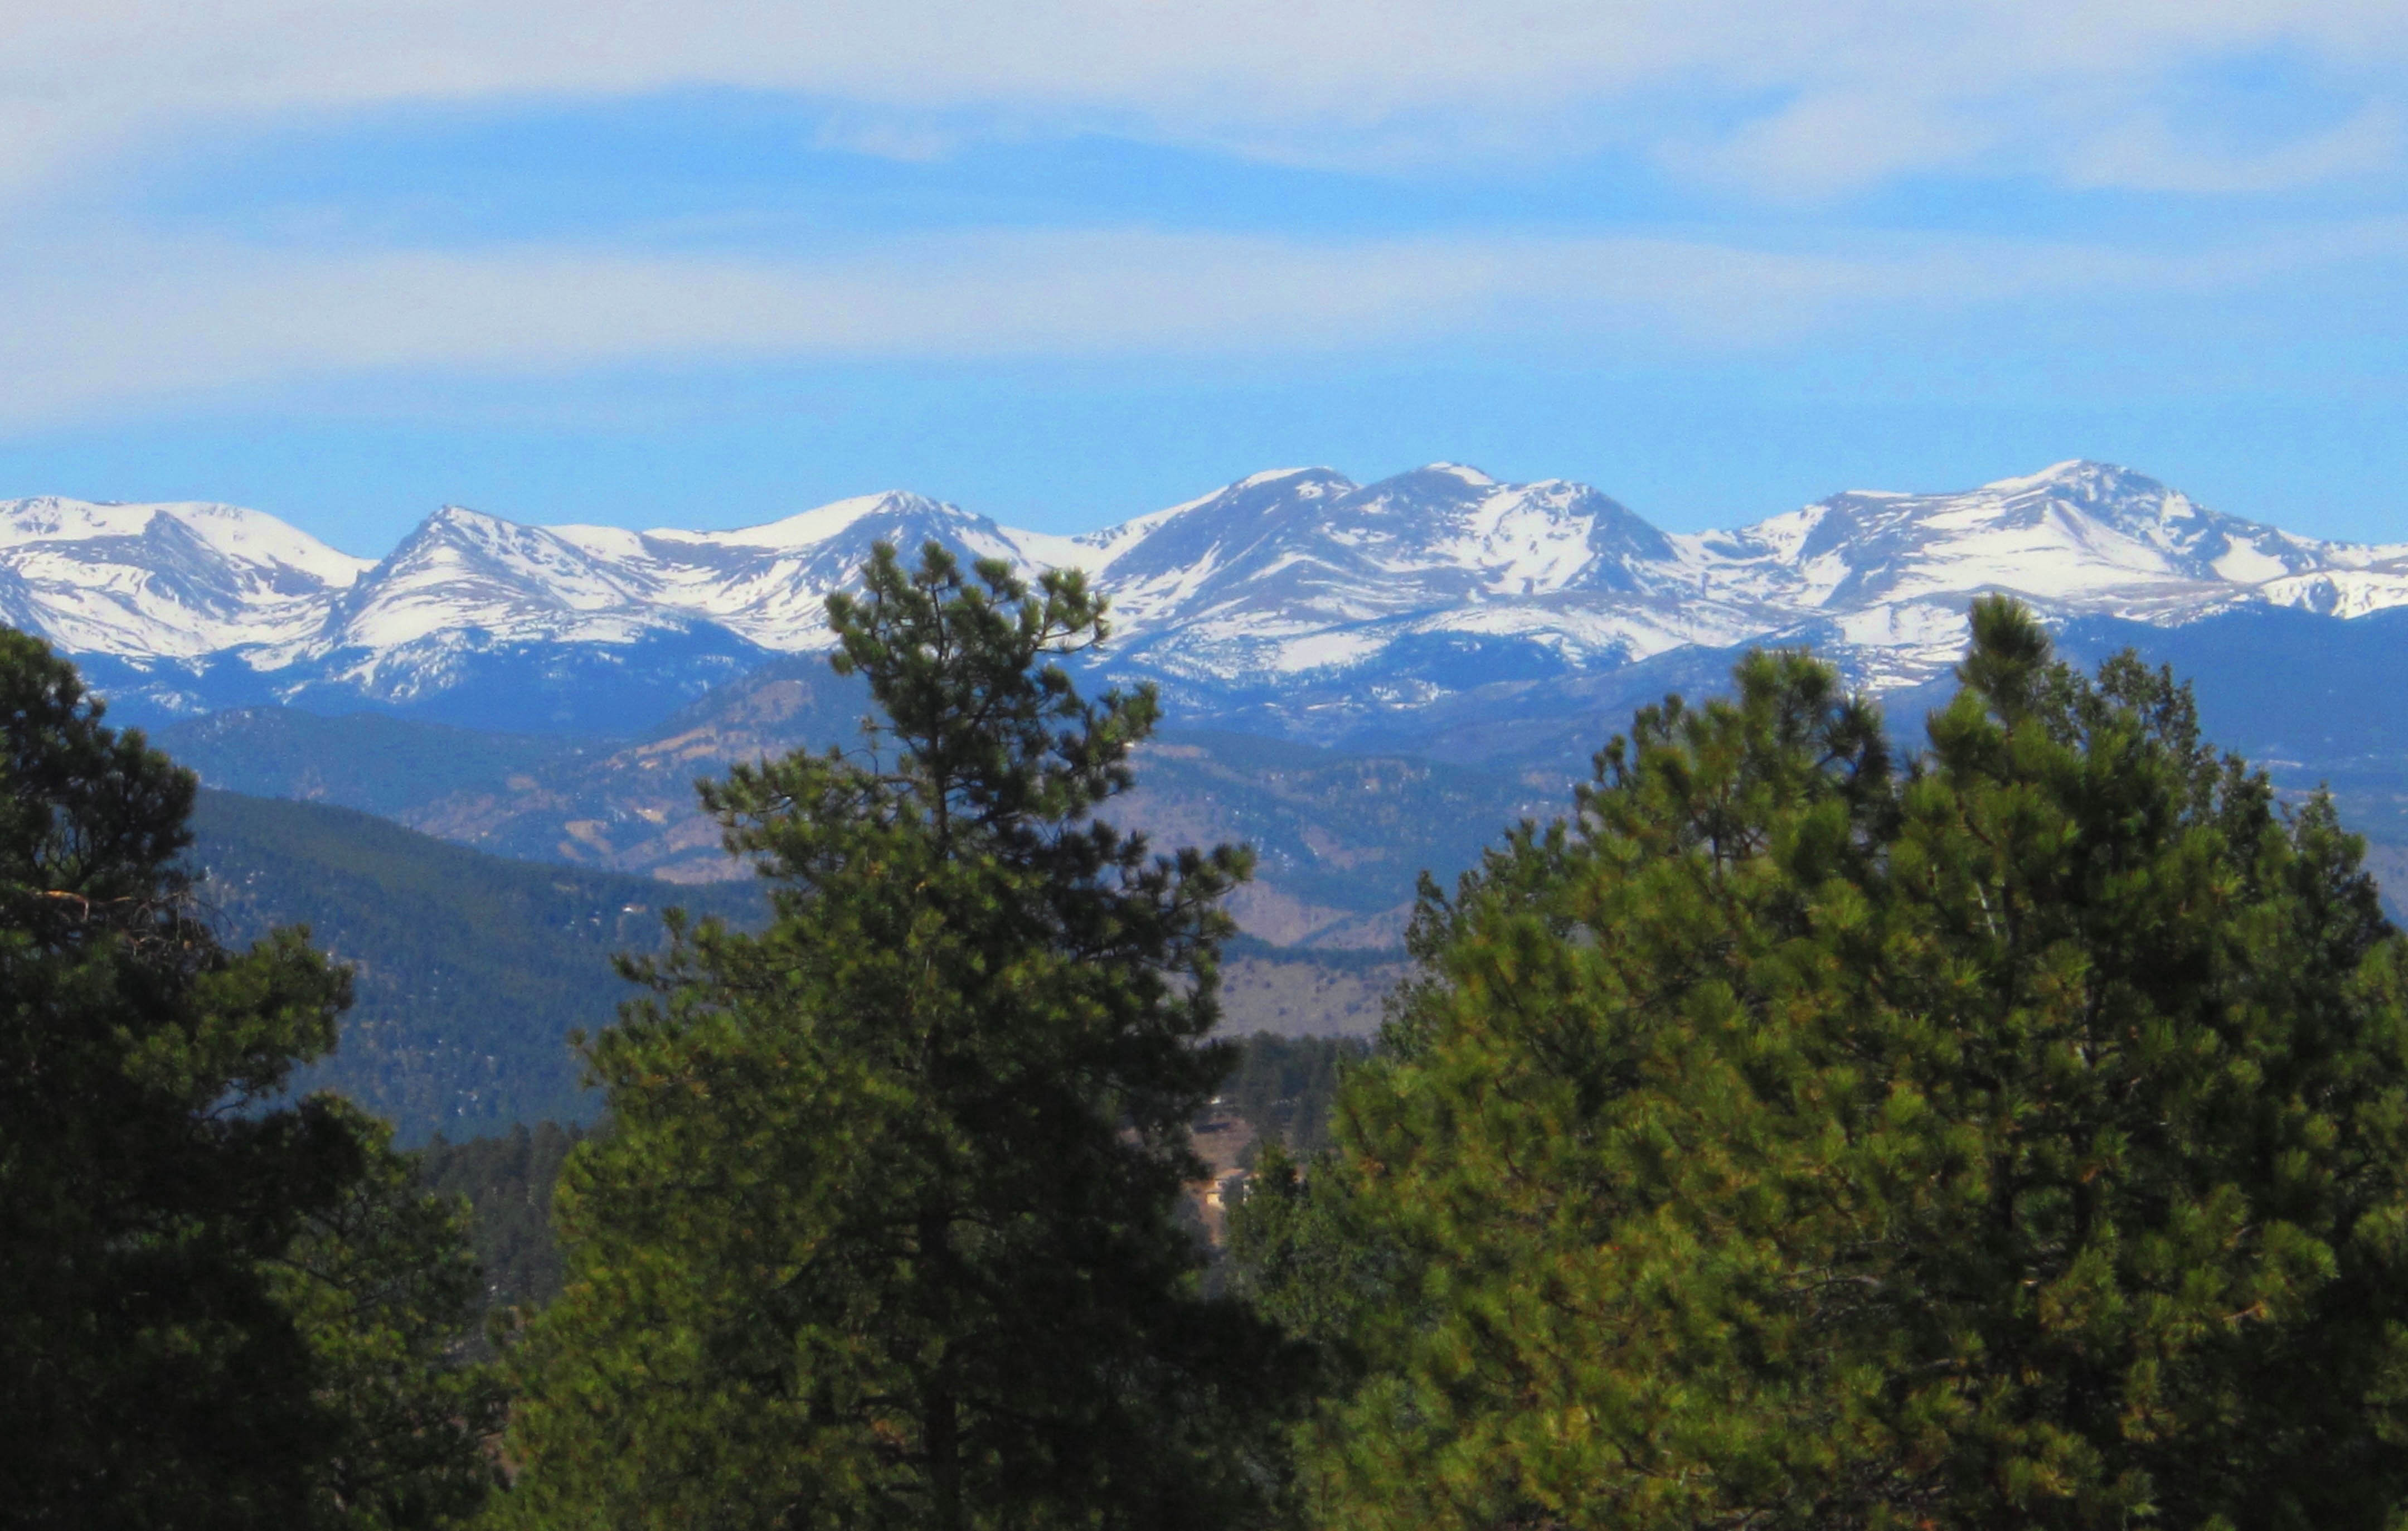 Windish RV Camping in Spring in Colorado